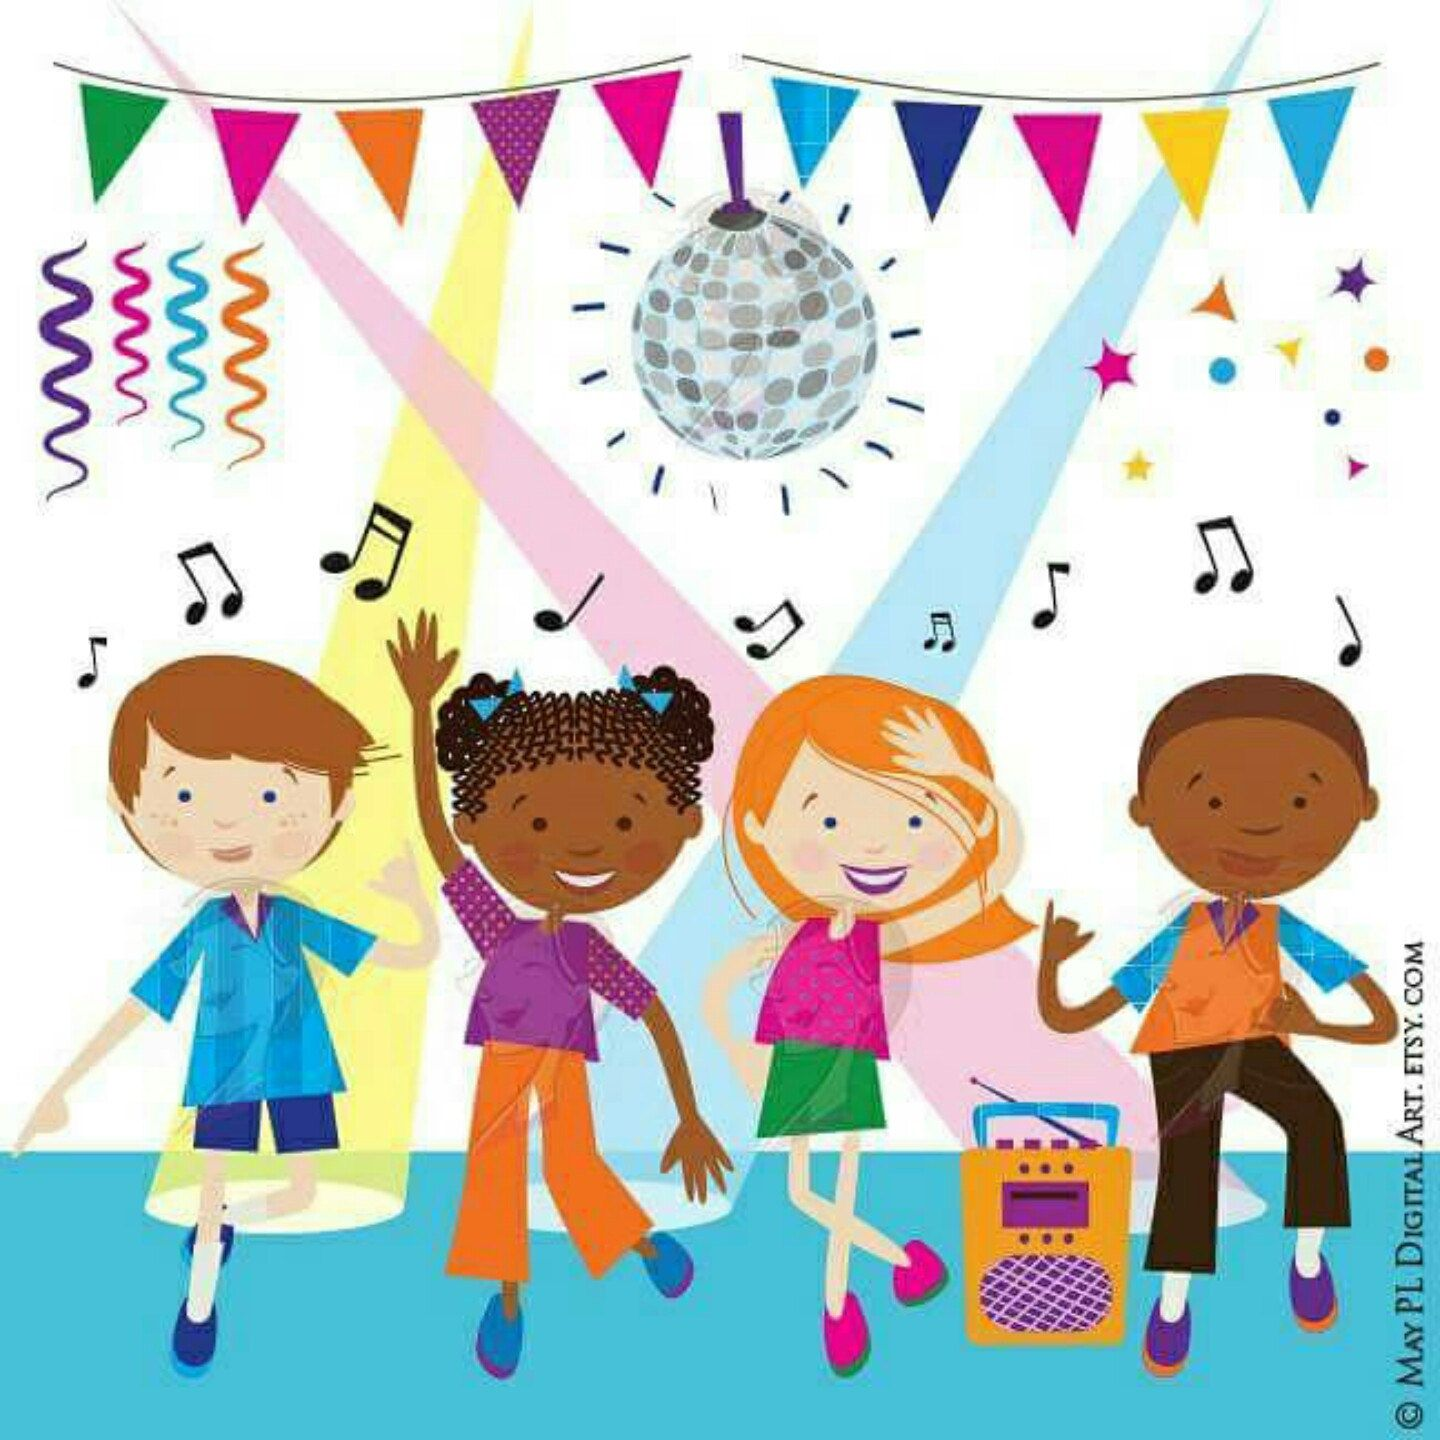 Dance Clipart Disco Kids Party Children Boy Dancing Cute Vector Commercial Use Graphics Celebration Fun Funky Ilration Png 10704